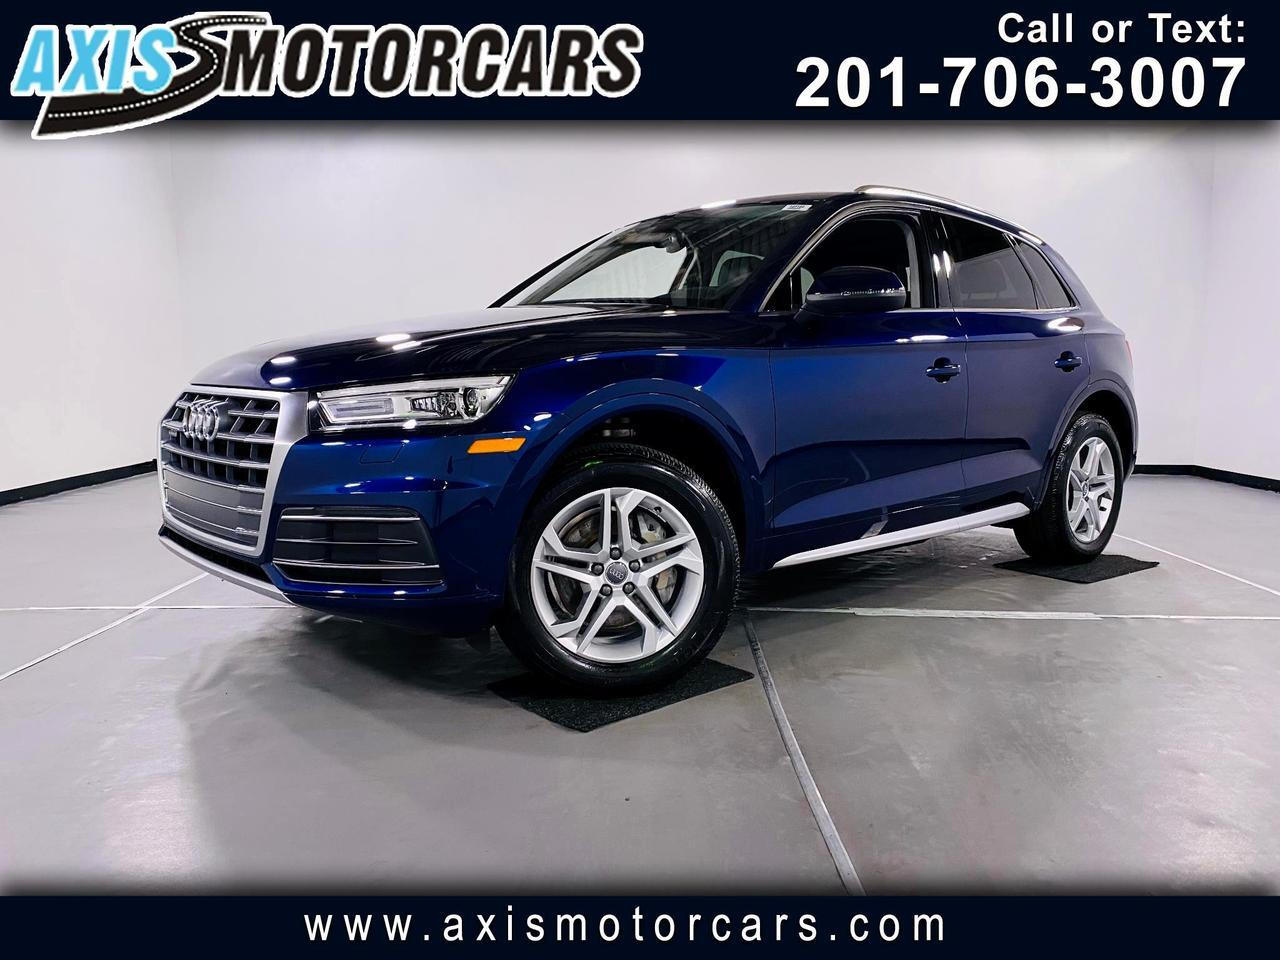 2018 Audi Q5 2018 Audi Q5 2.0T Quattro w/Backup Camera Navigati Jersey City NJ